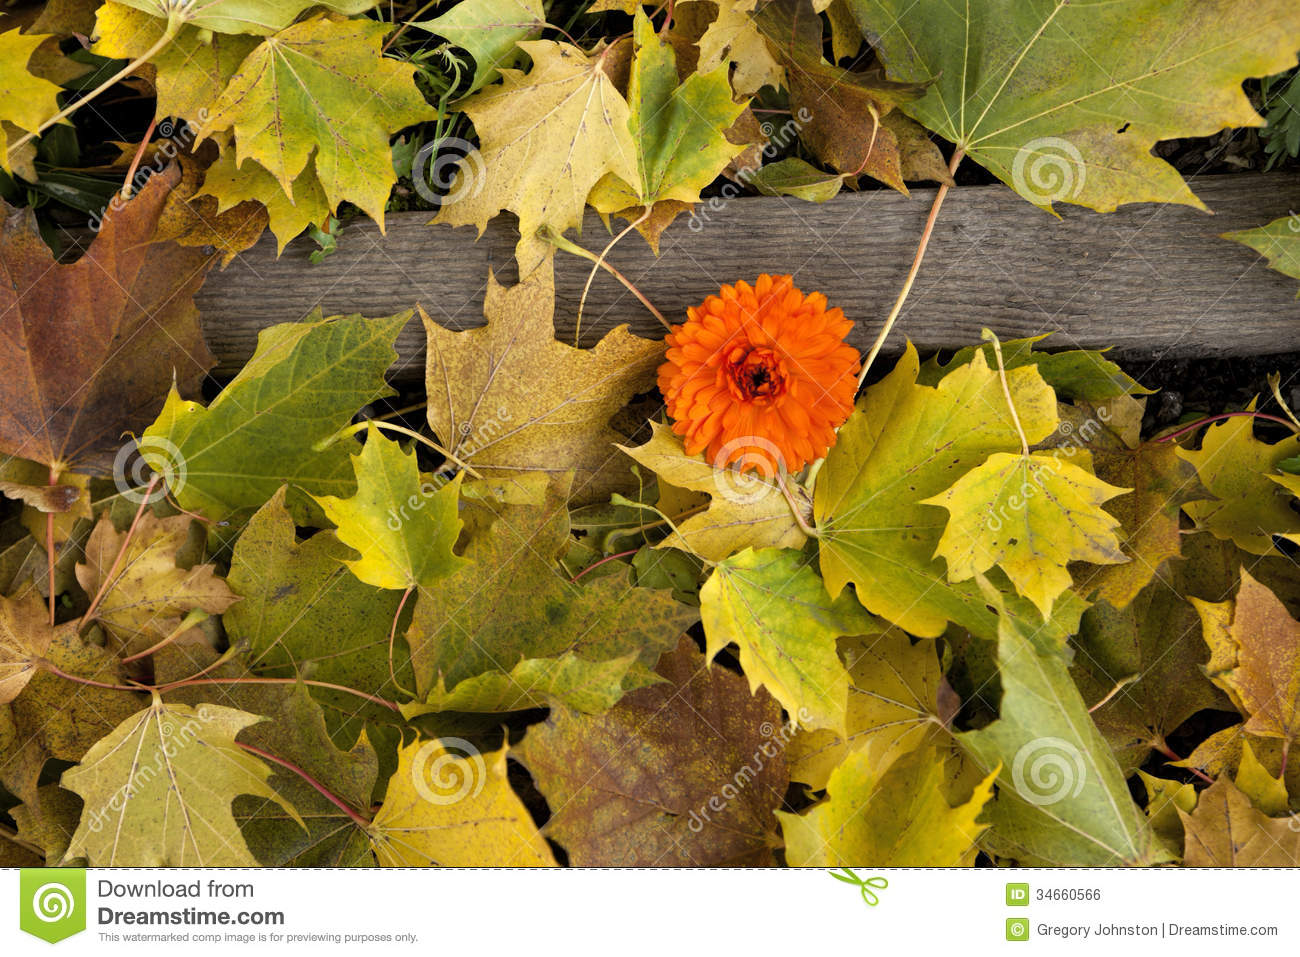 Fall leaves on ground with flower royalty free stock image image 34660566 - Flowers that bloom in autumn ...